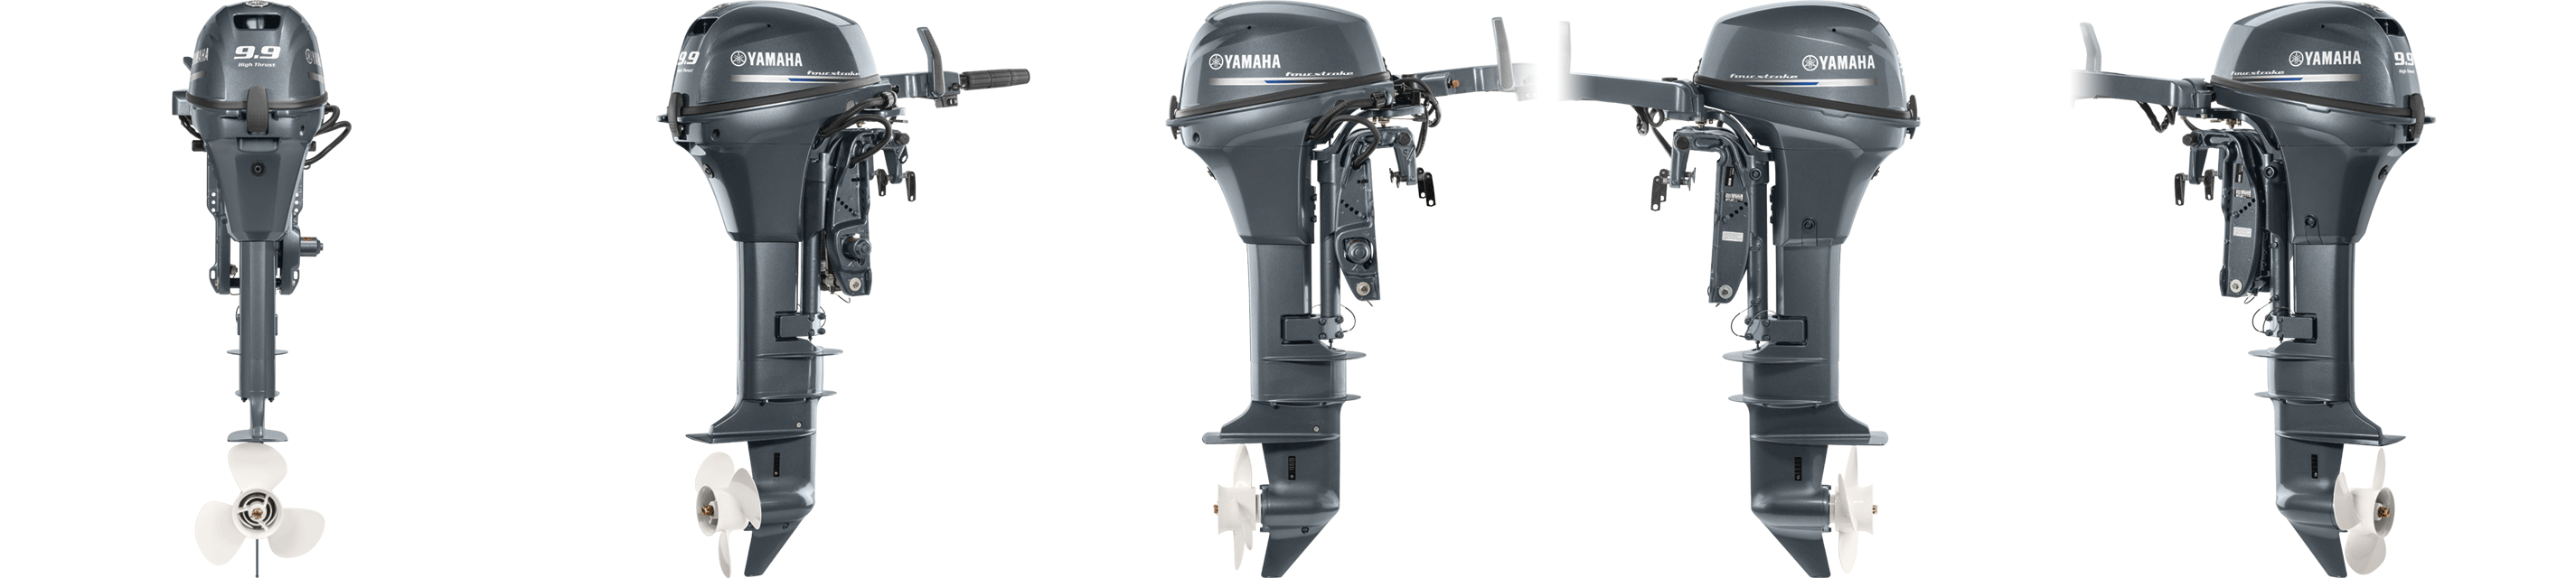 High Thrust Yamaha Outboards 2000 50 Hp 4 Stroke Wiring Diagram Propeller Except Models 25 And Under Which Include A Standard All Jet Model Weights The Pump Assembly Weight Estimated